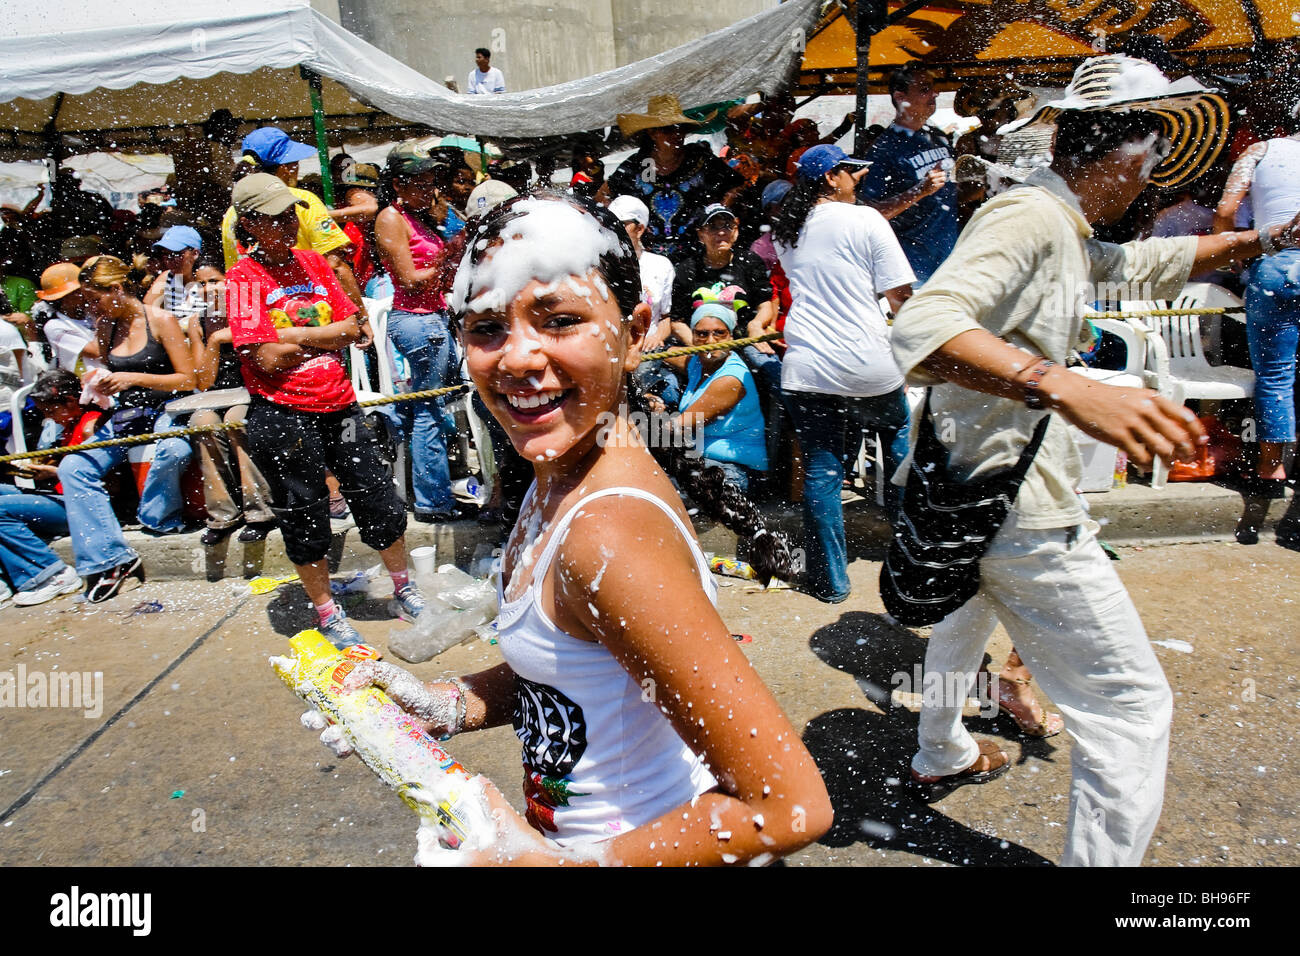 The foam battle during the Carnival of Barranquilla 2006, Colombia. Stock Photo